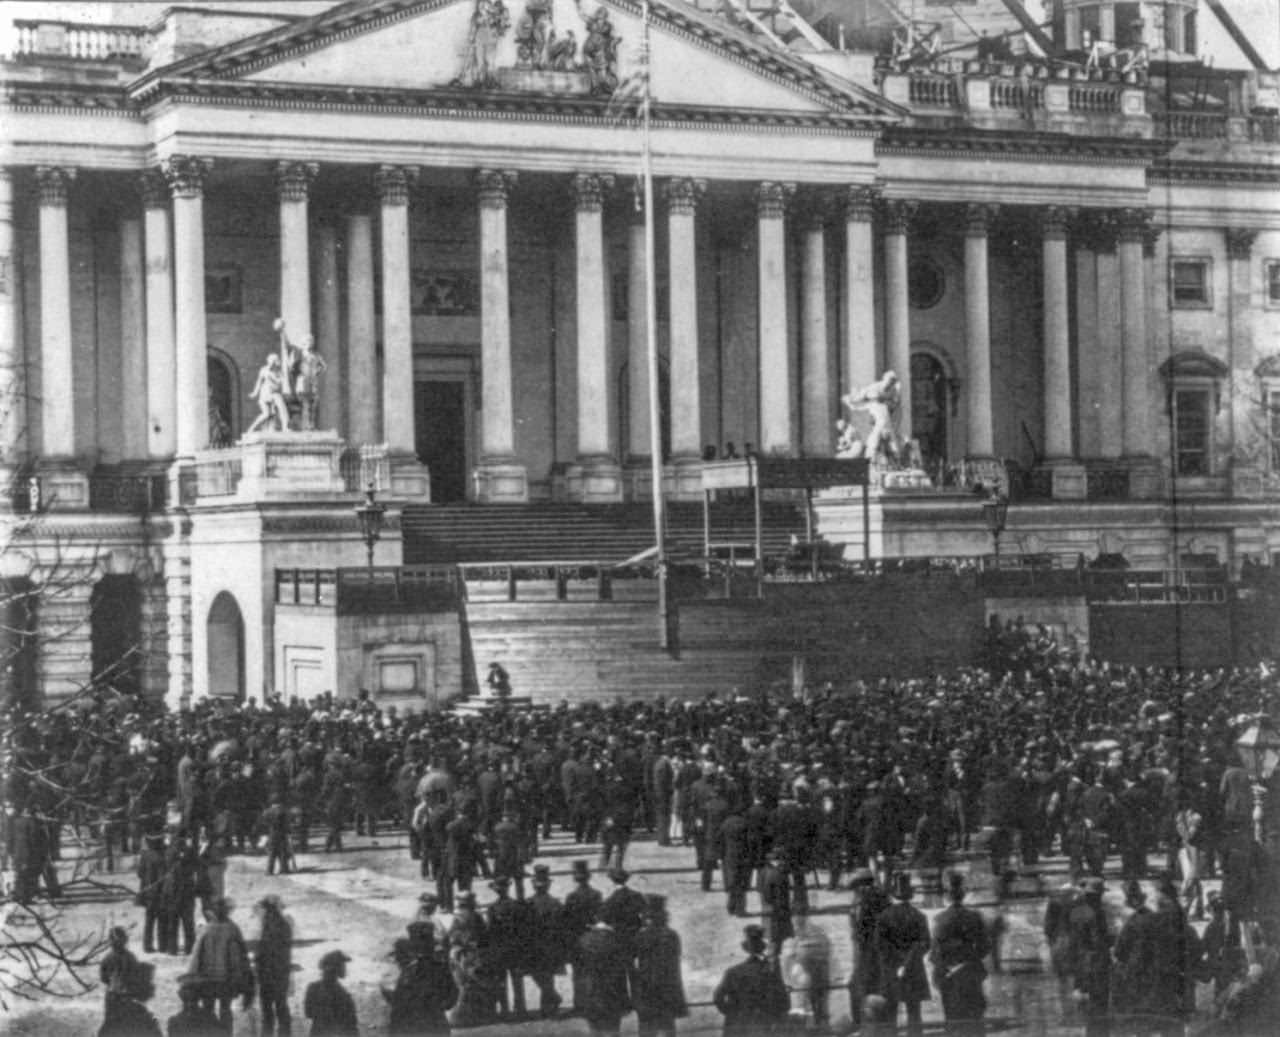 A crowd gathers for Abraham Lincoln's inauguration, March 4, 1861